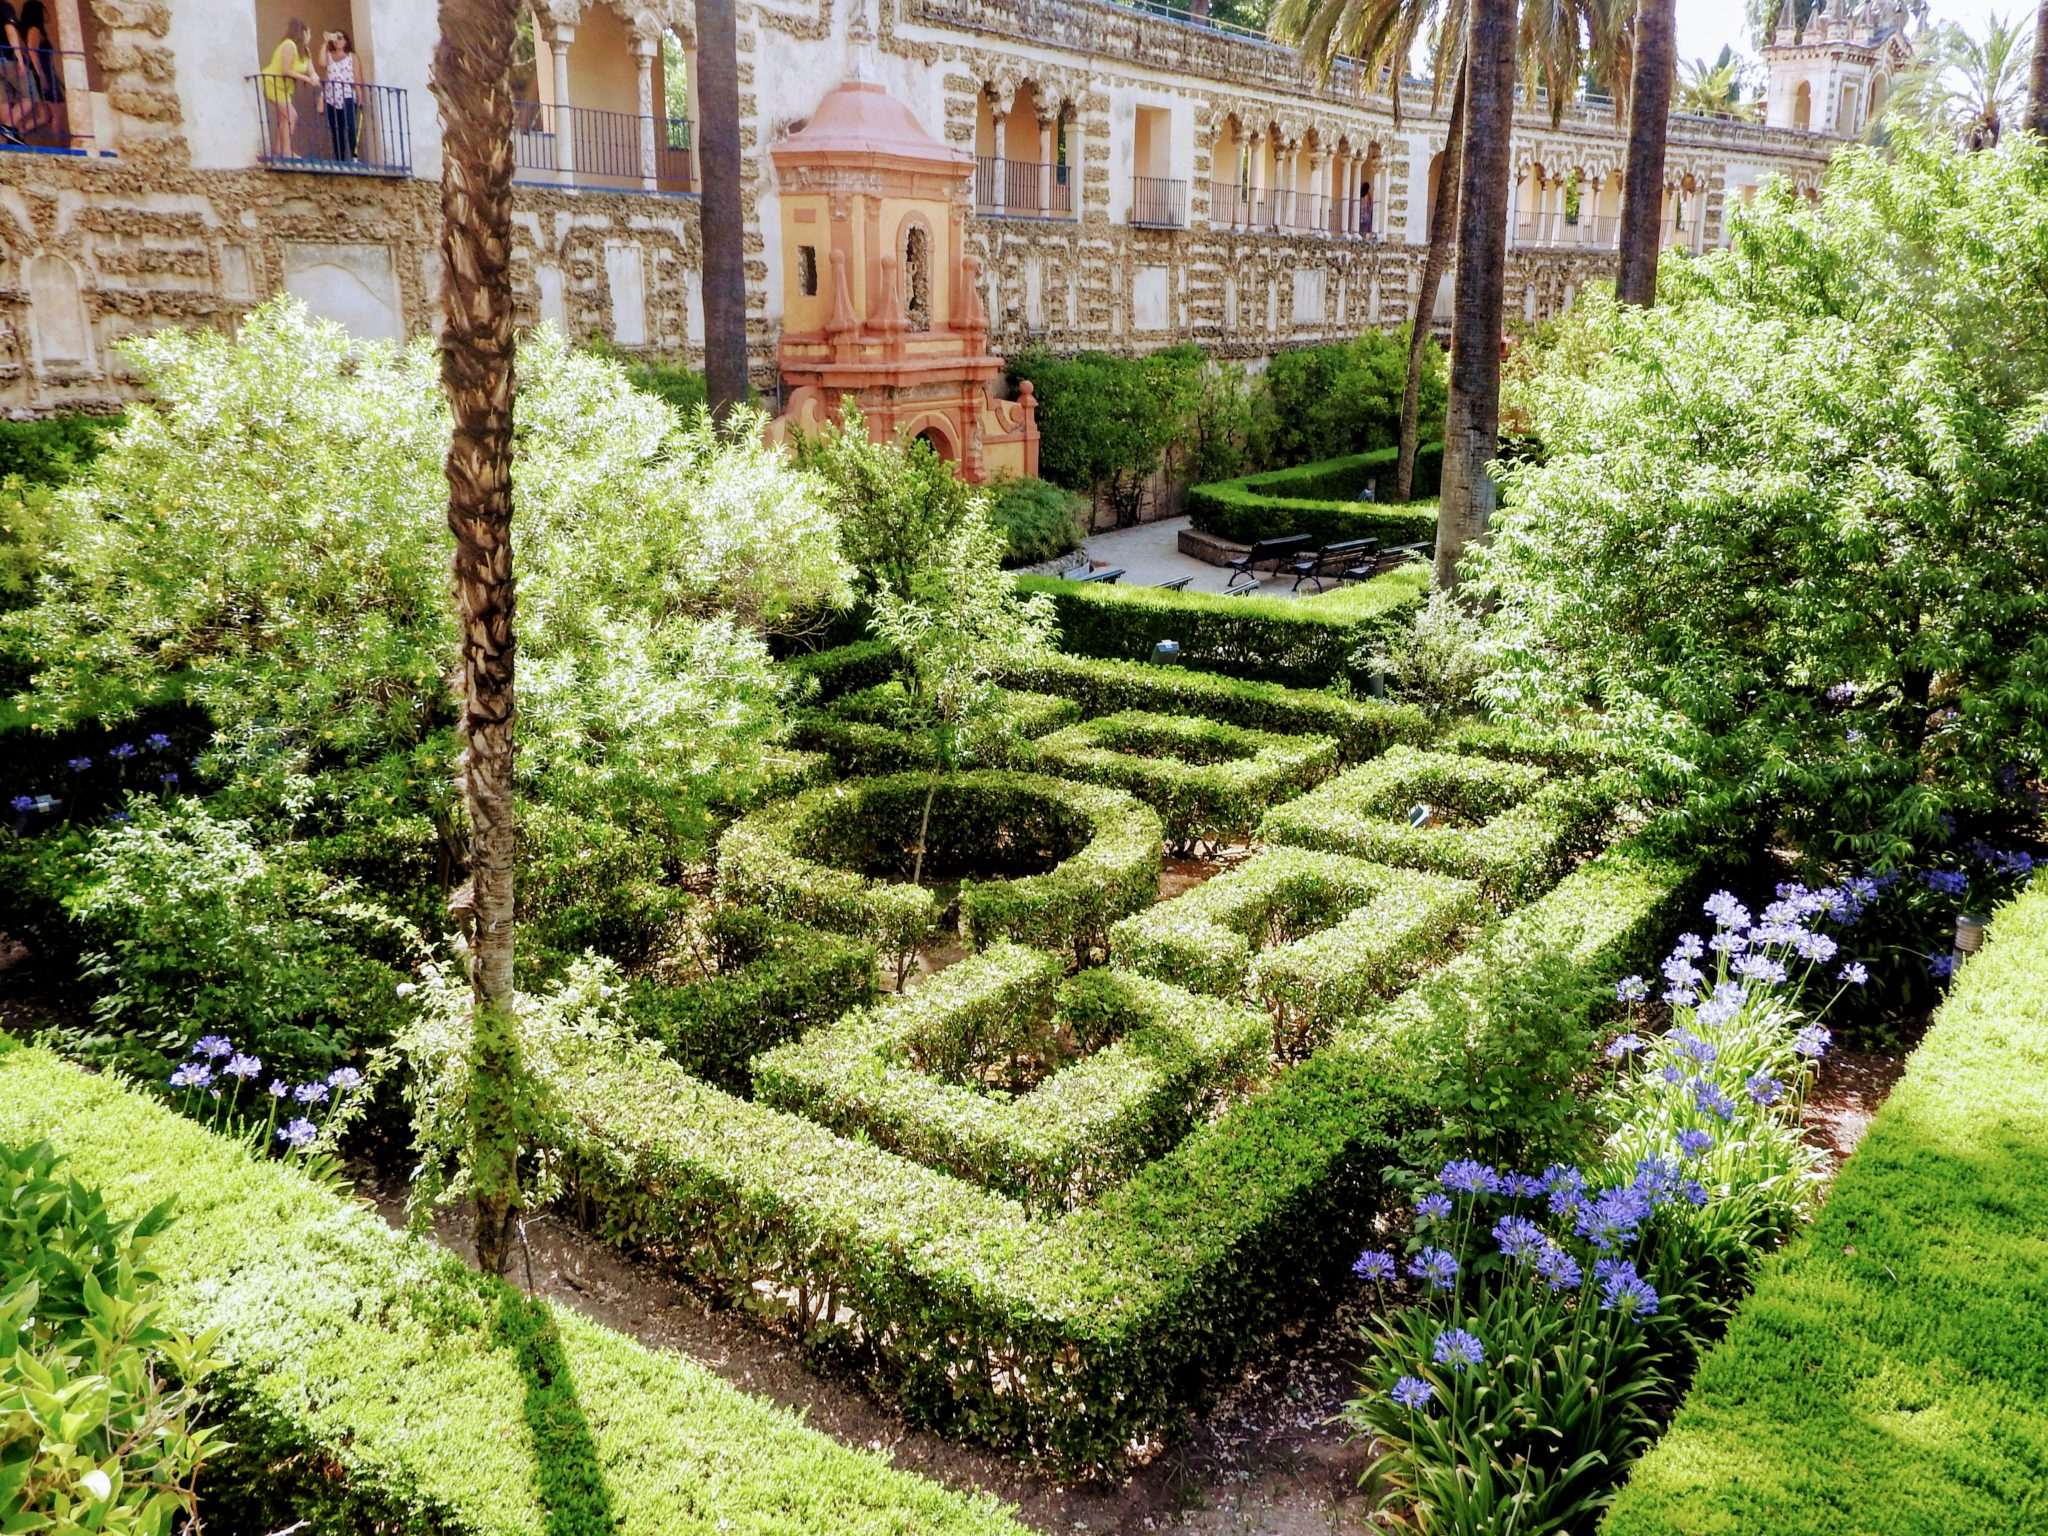 Mannerist style garden at the Alcazar palace, Seville, Spain